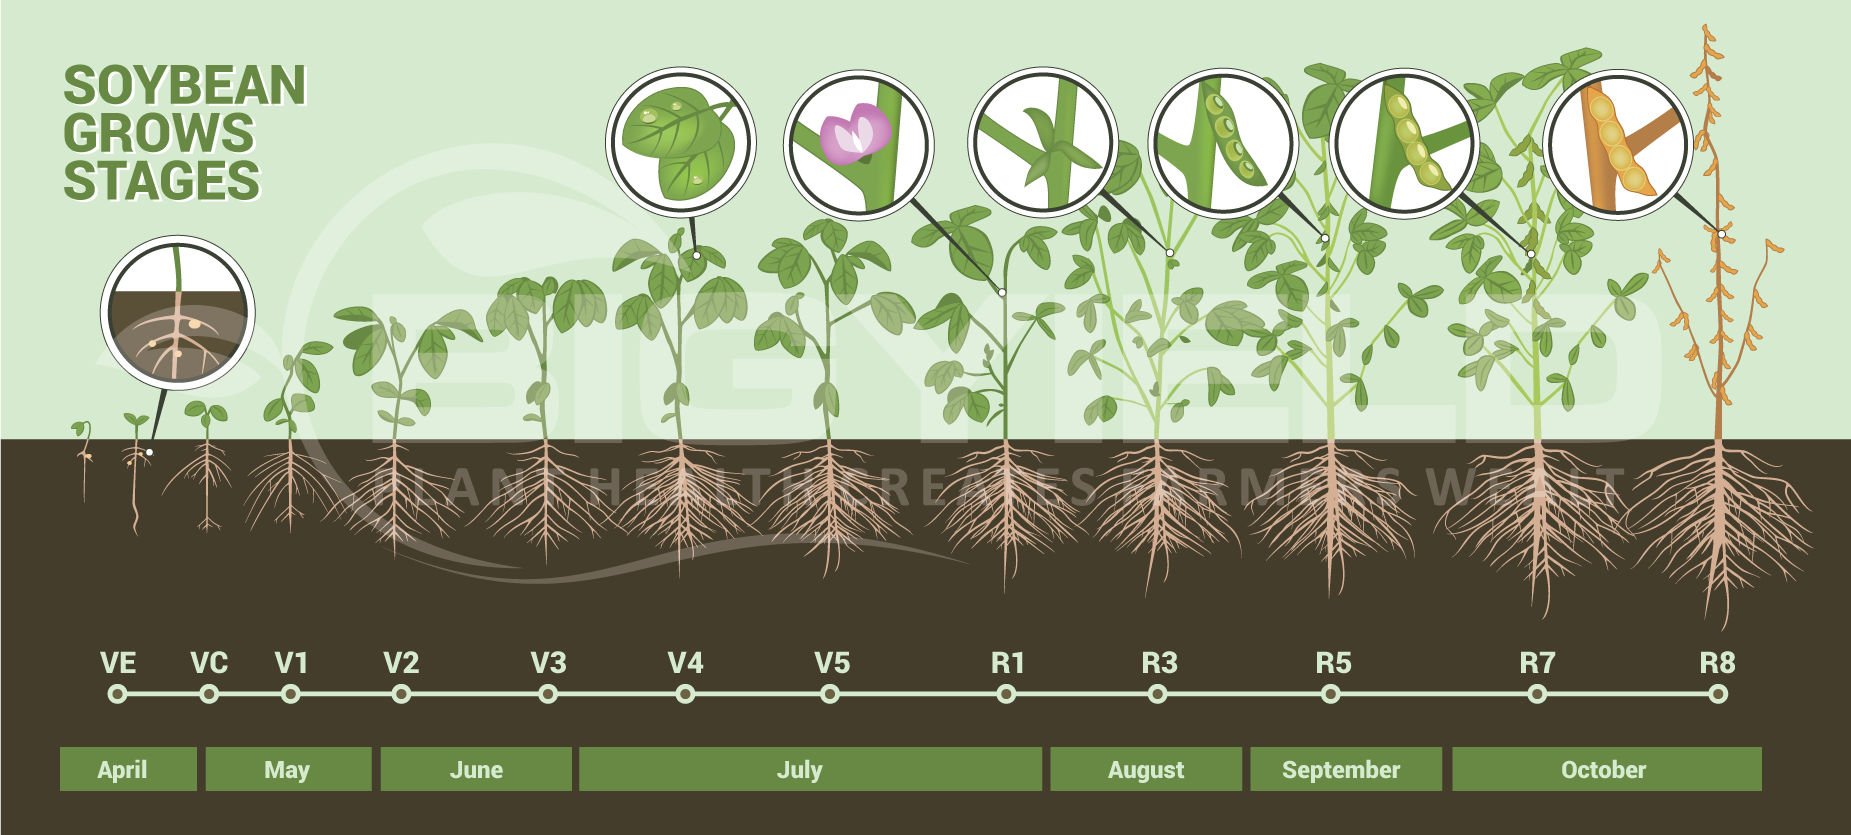 soybean growth stages